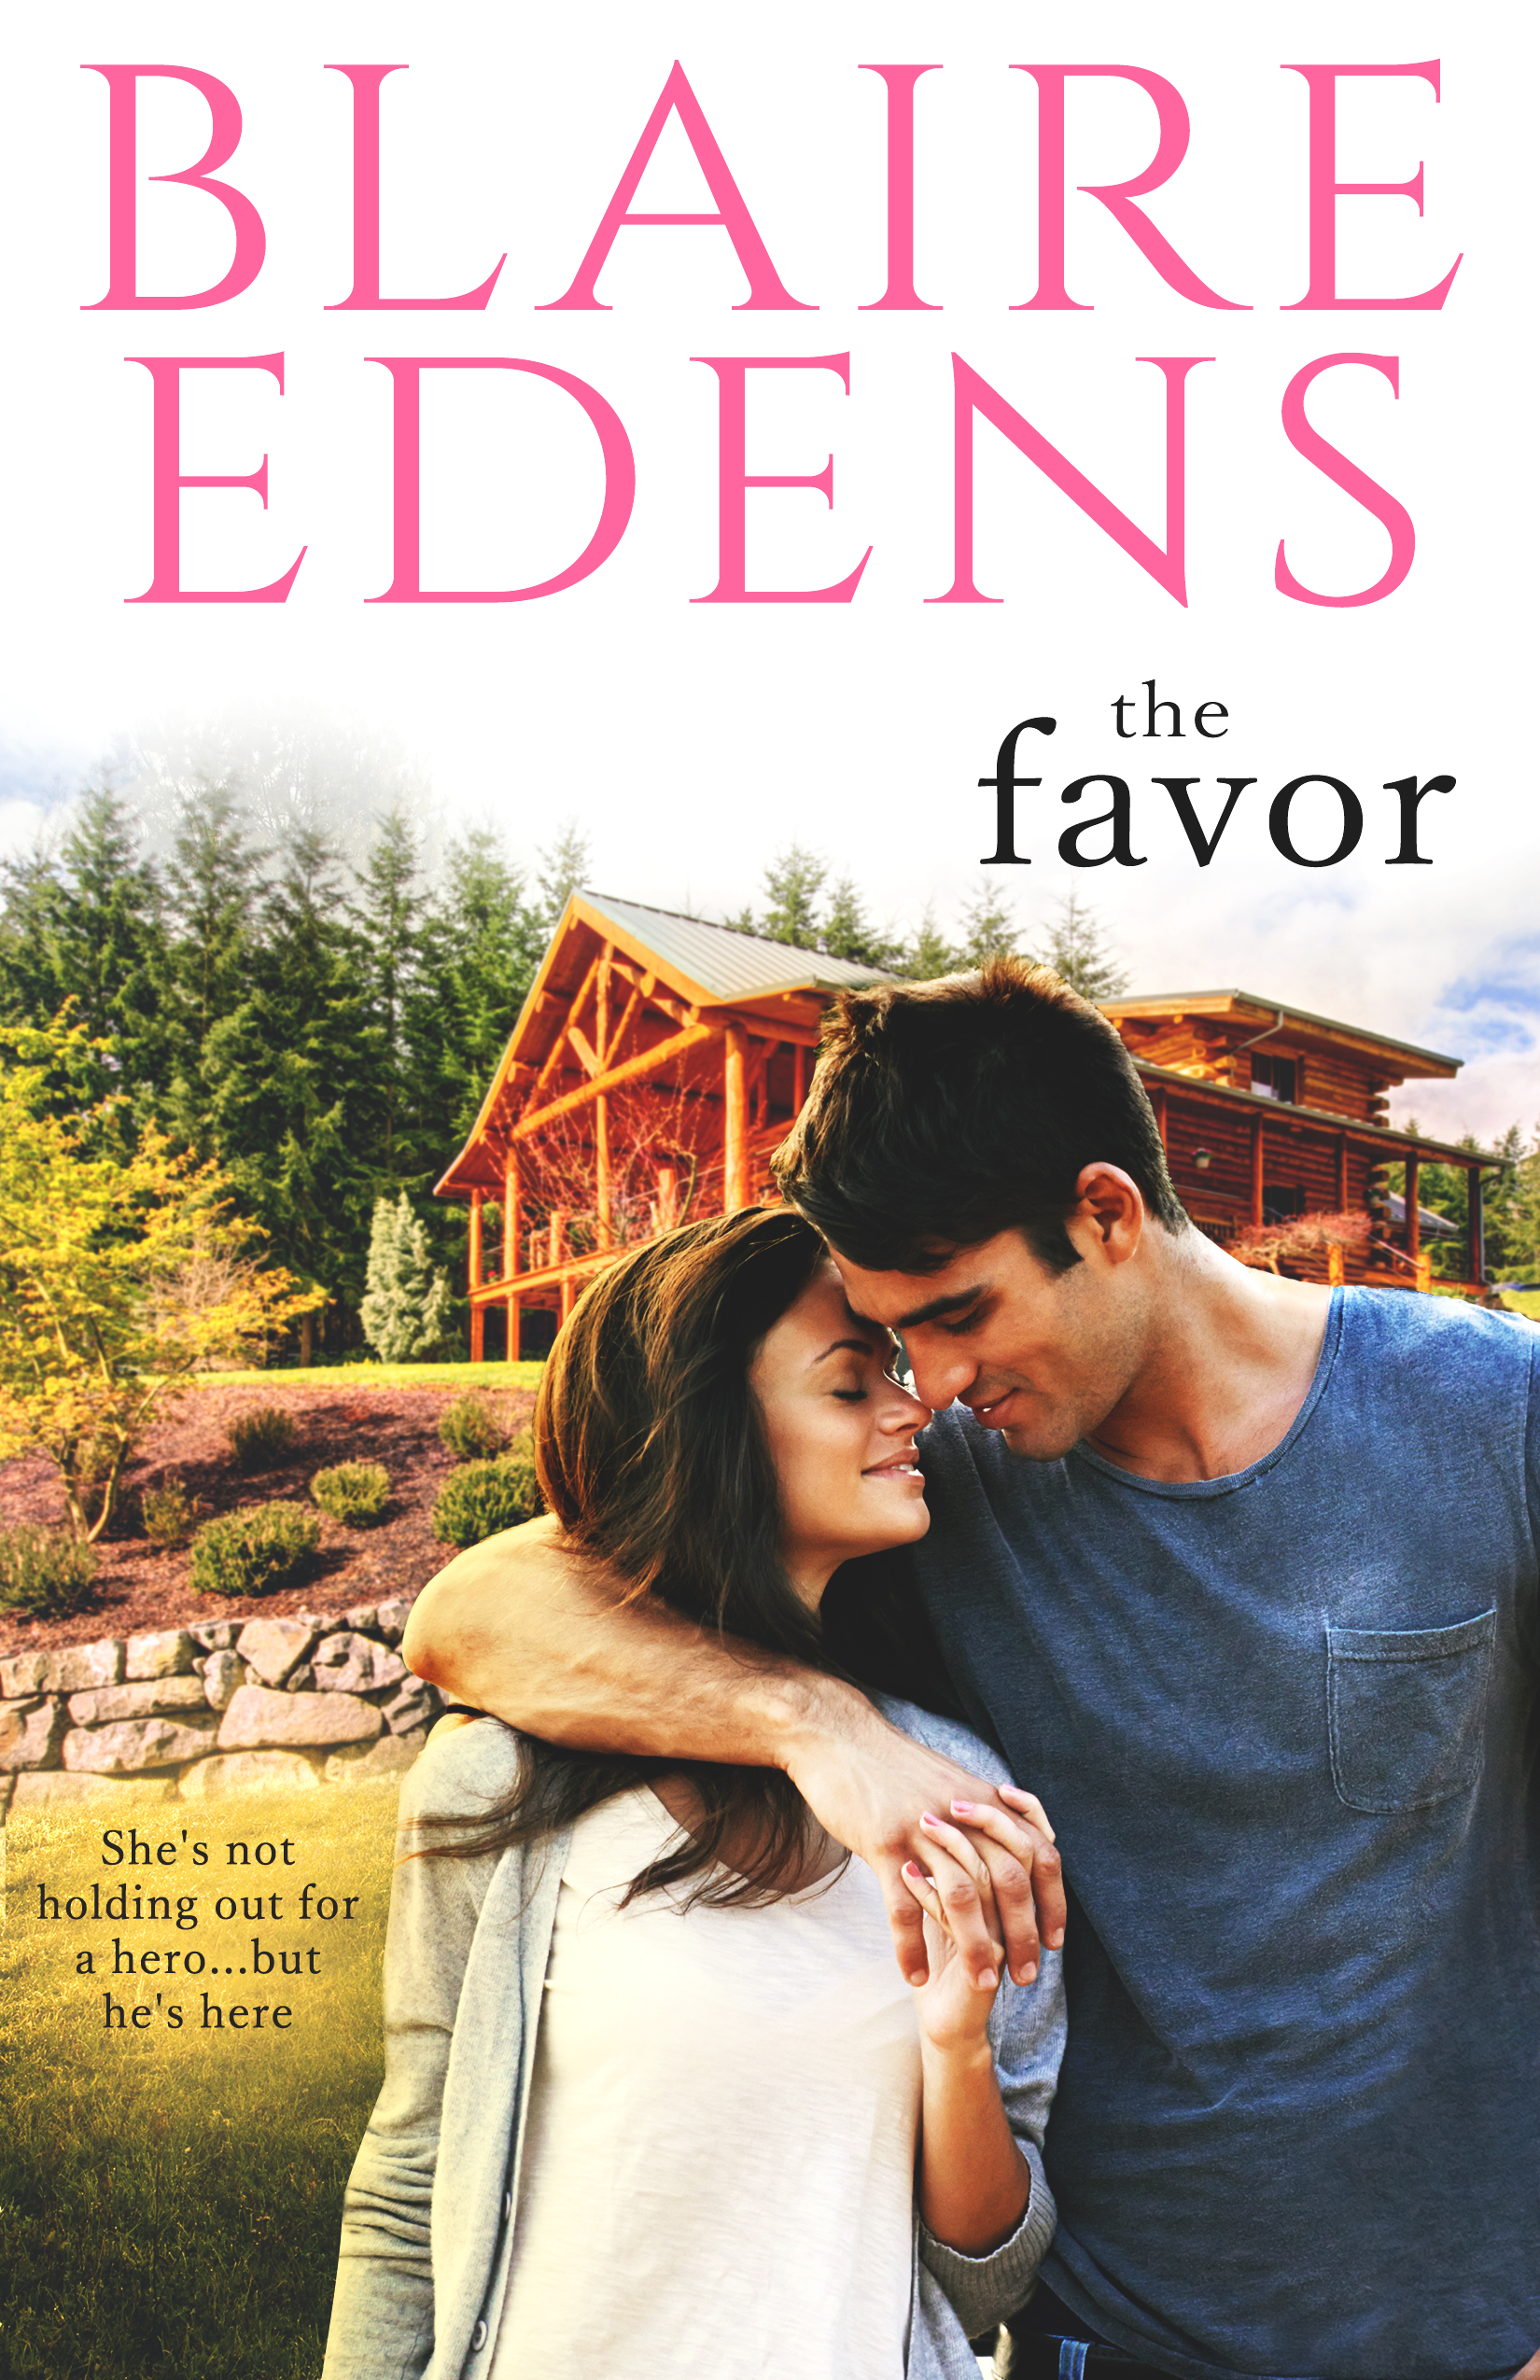 The Favor by Blaire Edens